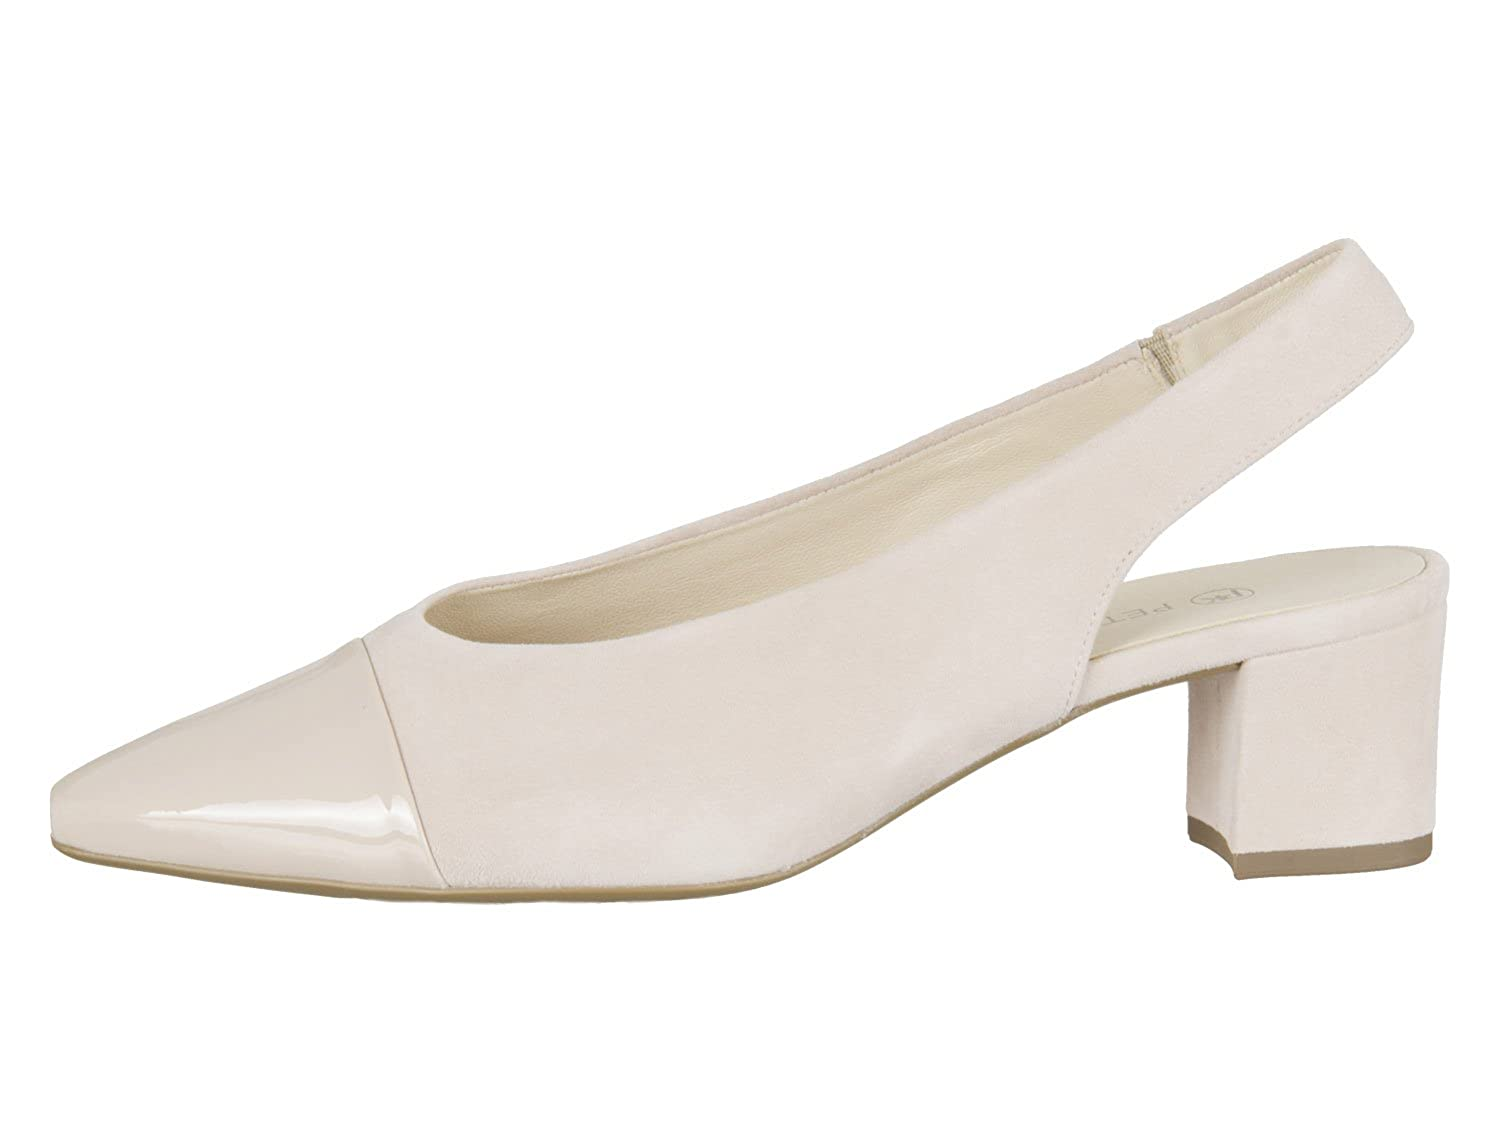 Peter Kaiser Damen Pumps Bozea 47109-678 Powder Powder 47109-678 Lack Suede 47109-678 Rosa 466435 4bb0c9